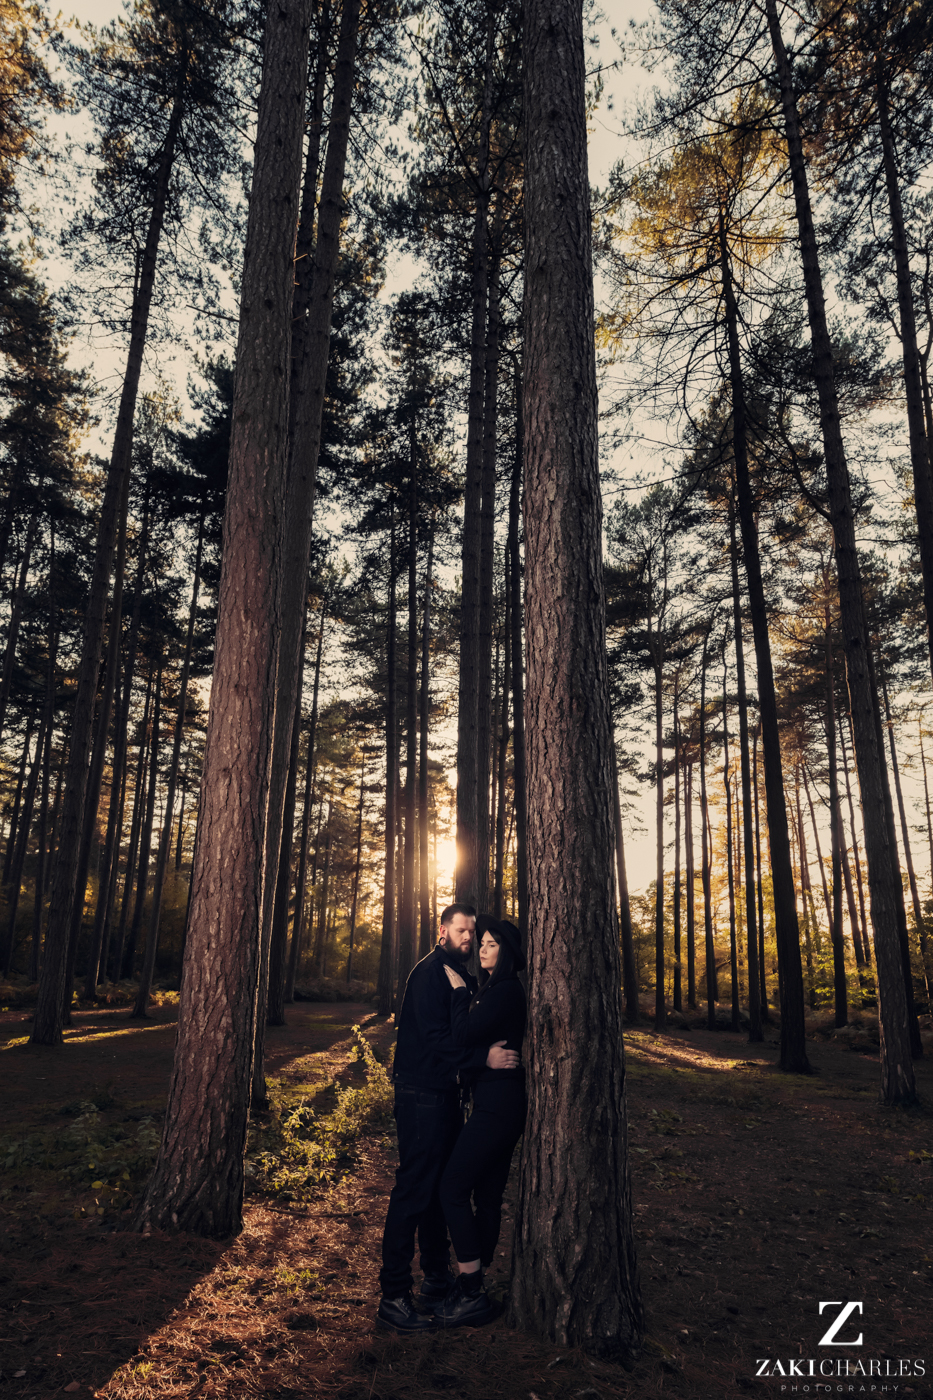 Black Park Engagement Session, Kirsty & Alex fine art photography 3